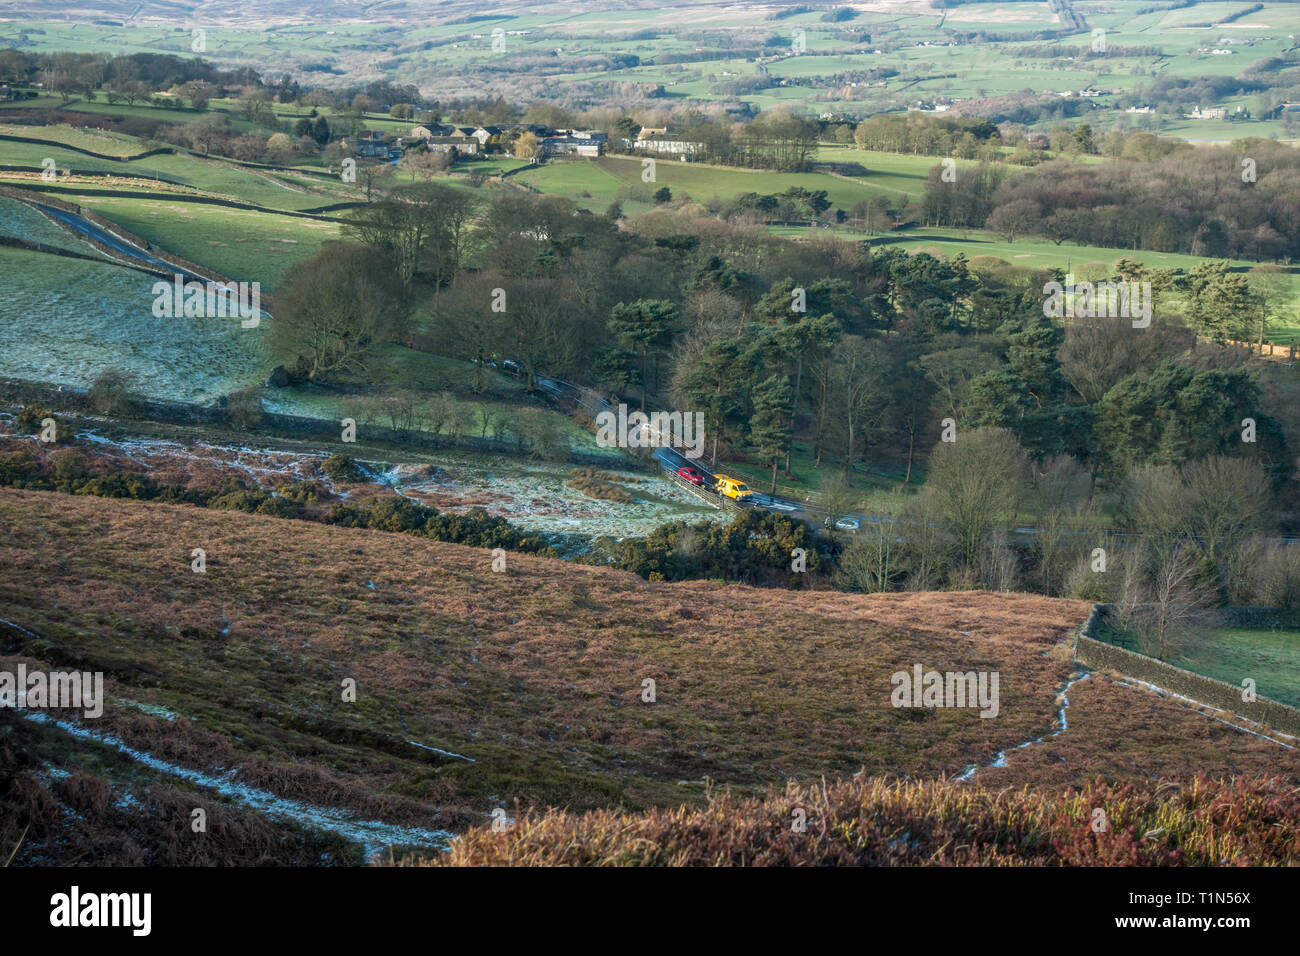 Road traffic accident caused by a hailstone downpour which created a slippery surface that meant a driver lost control of their car on a hill. Stock Photo